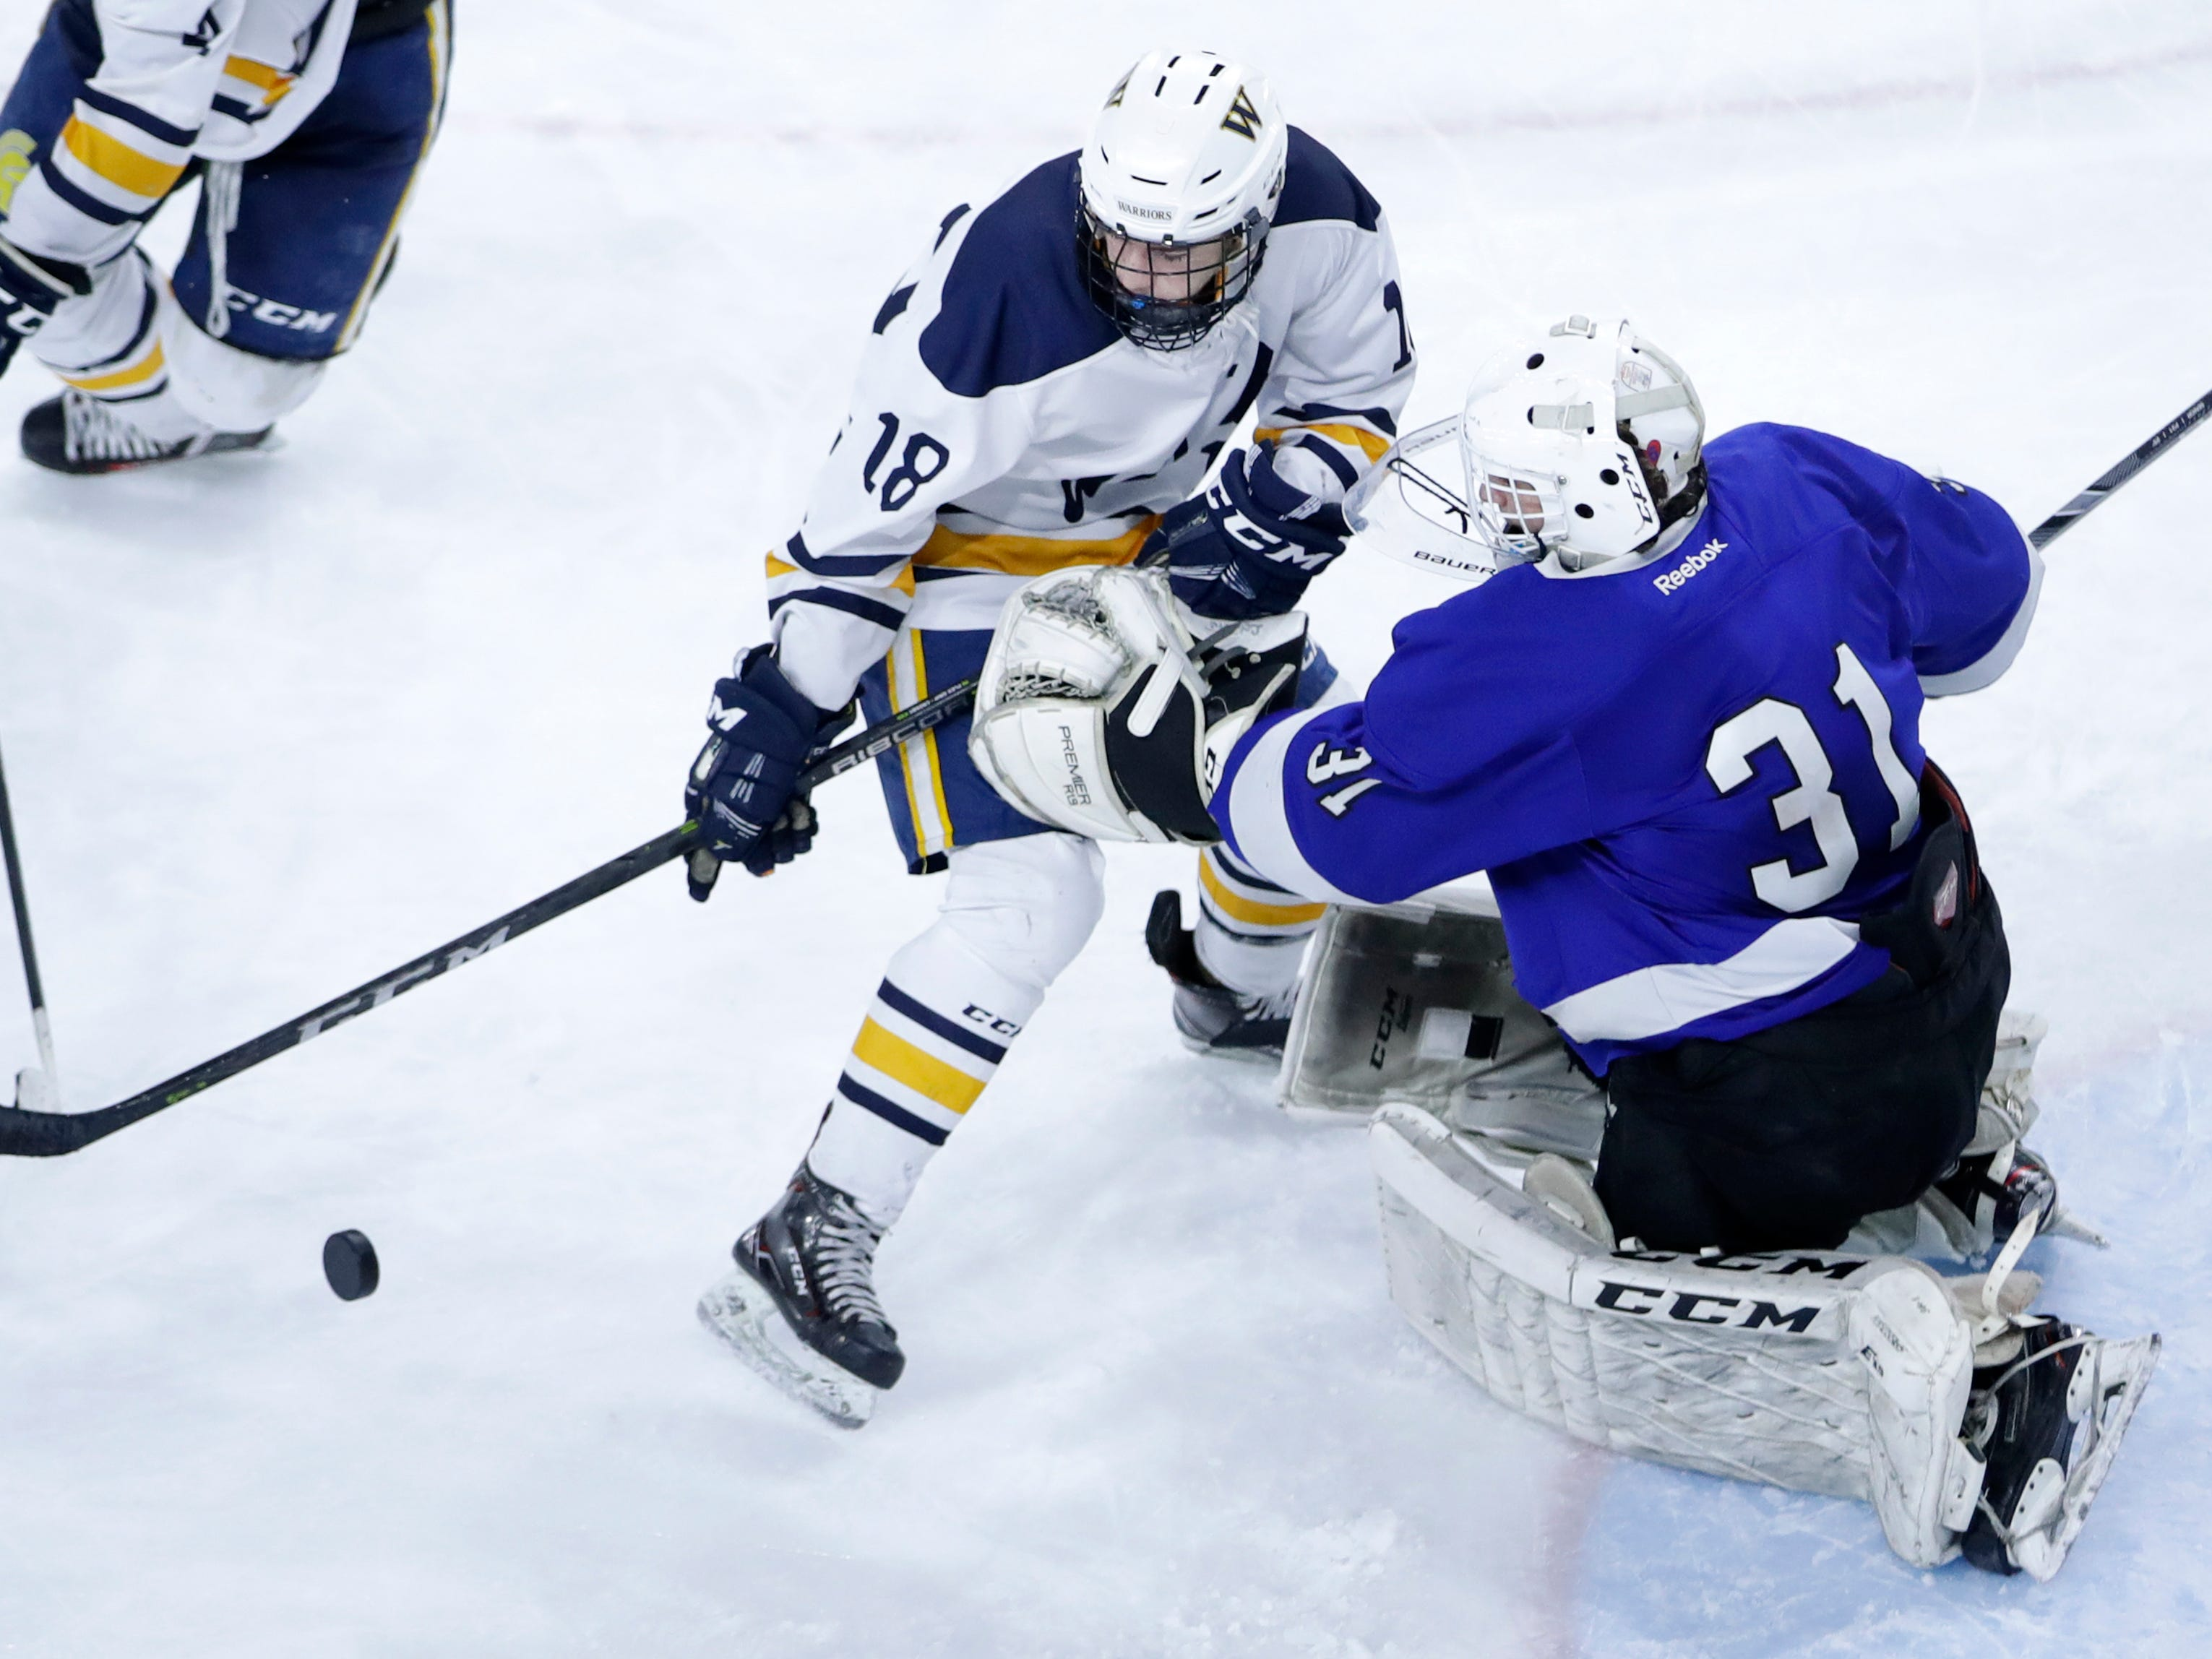 Wausau West's Lucas Langlois tries to control the puck in front of goal against Waukesha North Co-op during the WIAA State Hockey Tournament quarterfinals Thursday, Feb. 28, 2019, at Veterans Memorial Coliseum in Madison, Wis.